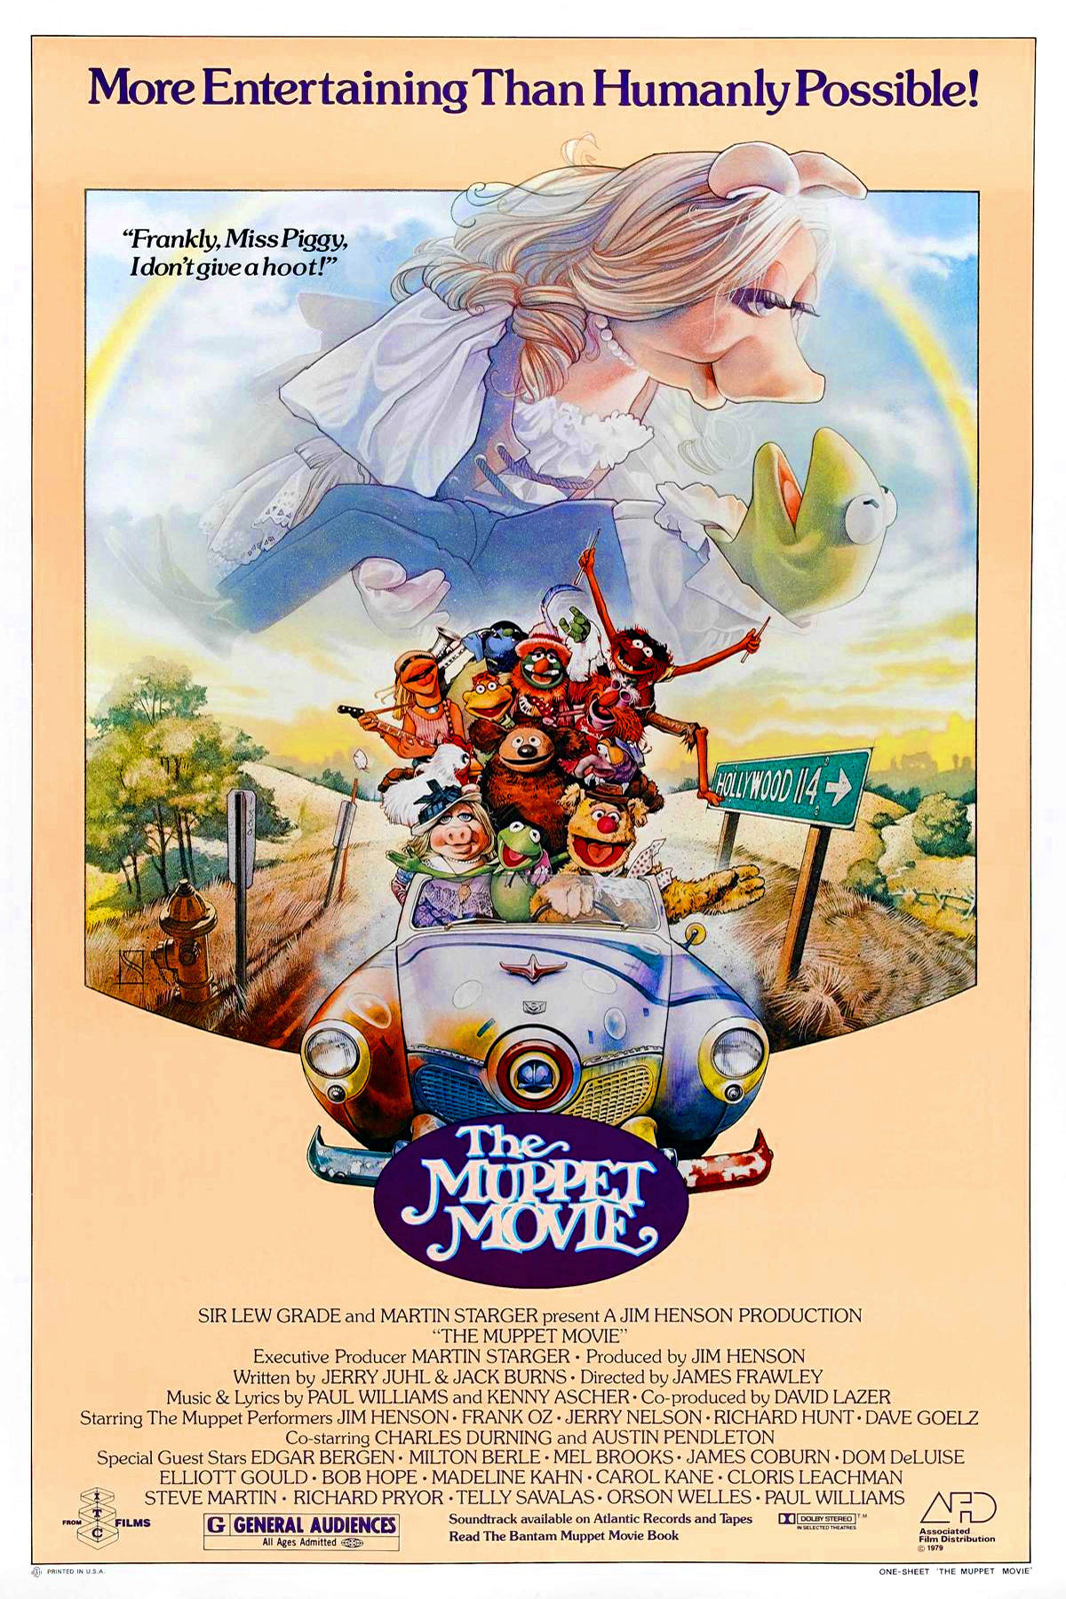 Poster for Muppet Movie, The